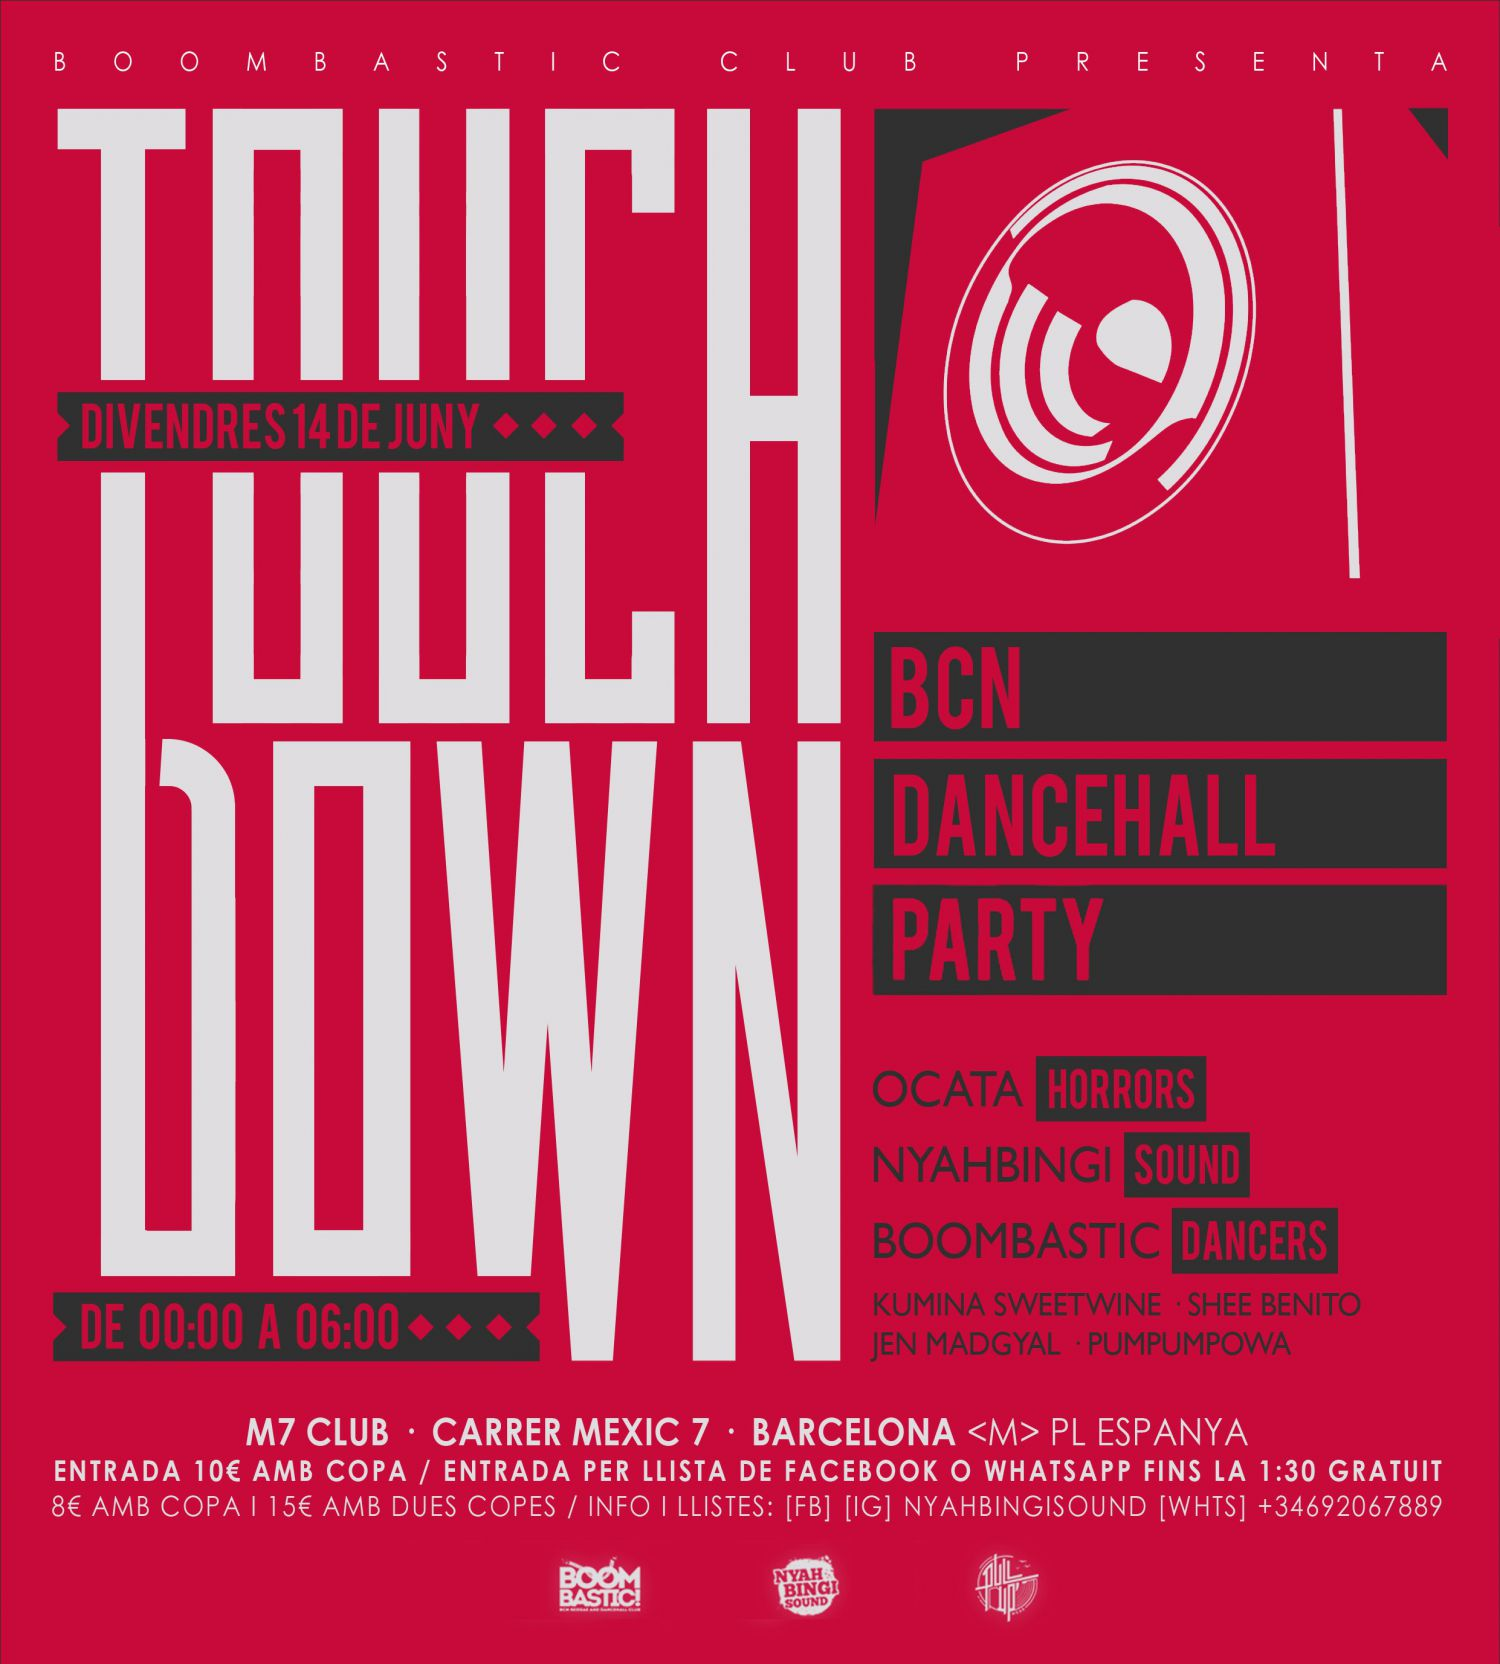 Concert de Nyahbingi Sound, Ocata Horrors, BoomBastic Dancers  - Touch Down Bcn Dancehall Party